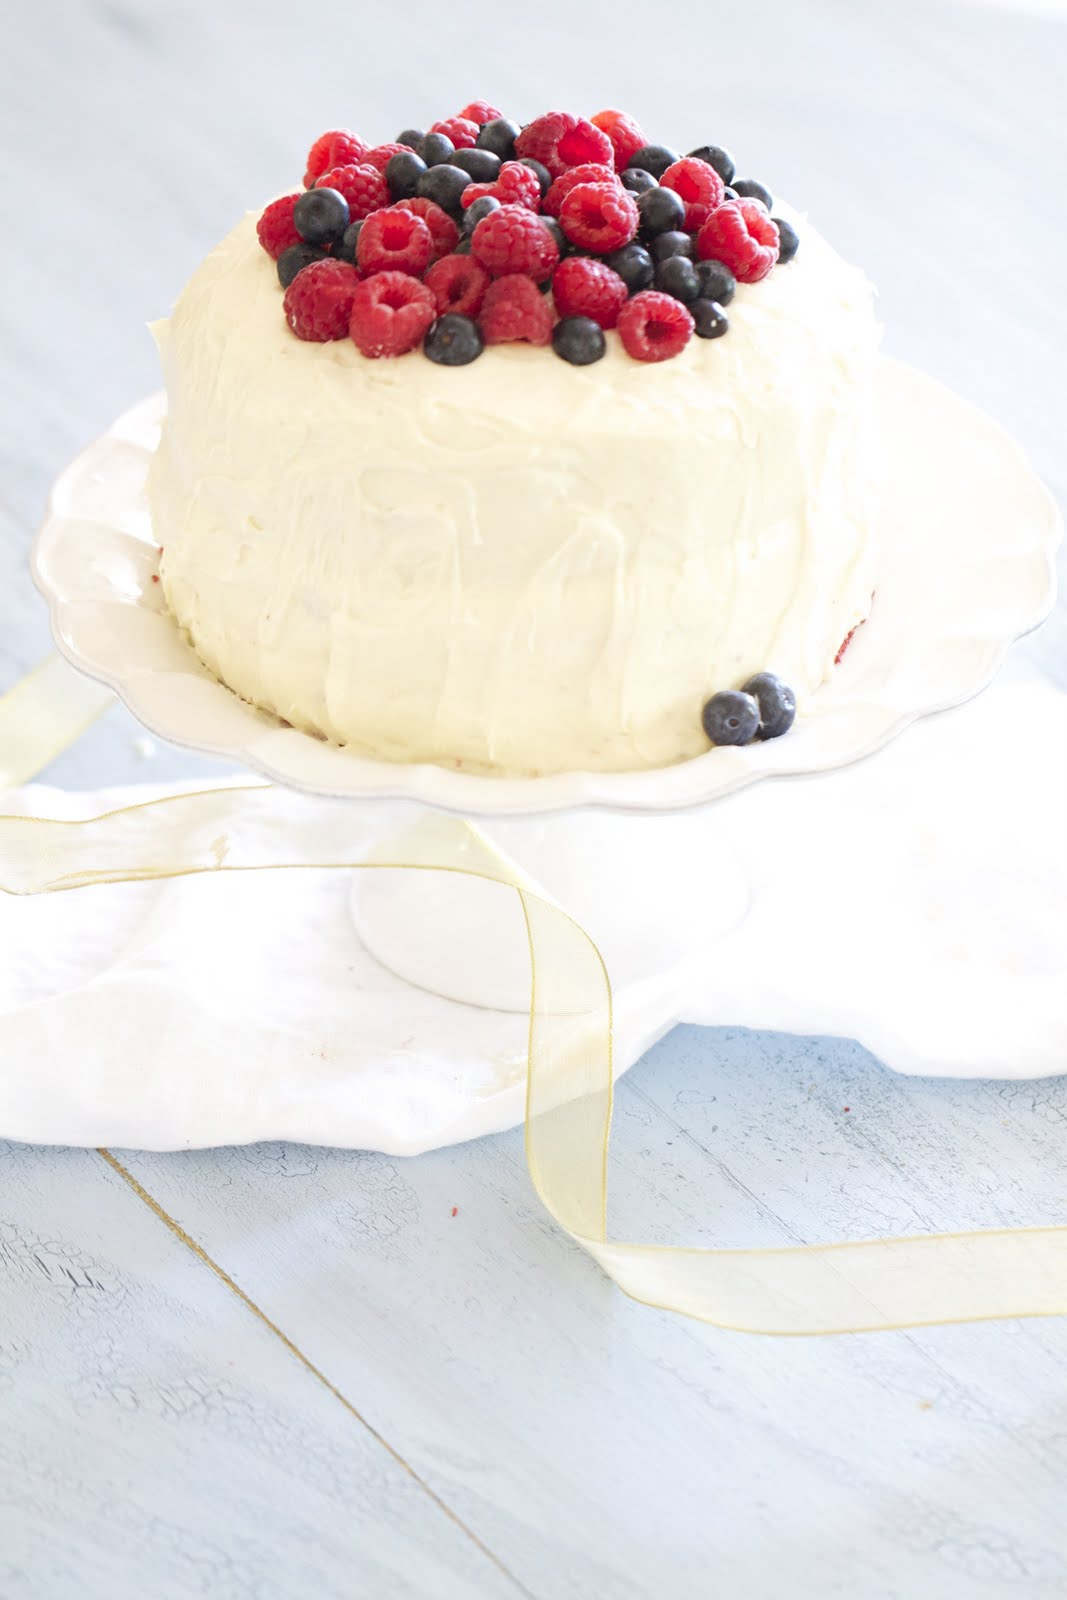 Red Velvet Cake With Raspberries And Blueberries Recipes — Dishmaps